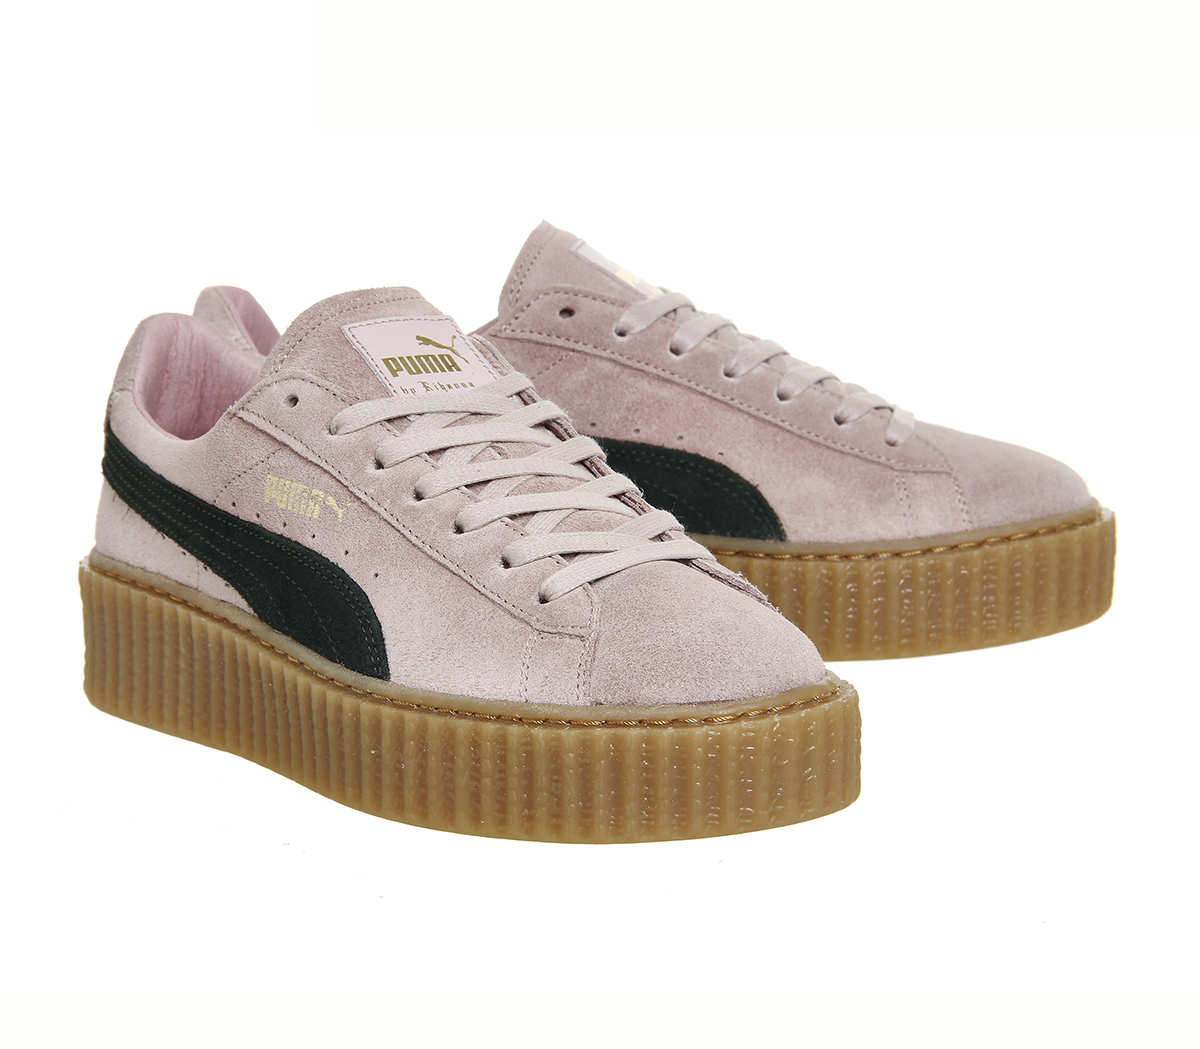 lyst puma suede creepers in pink. Black Bedroom Furniture Sets. Home Design Ideas